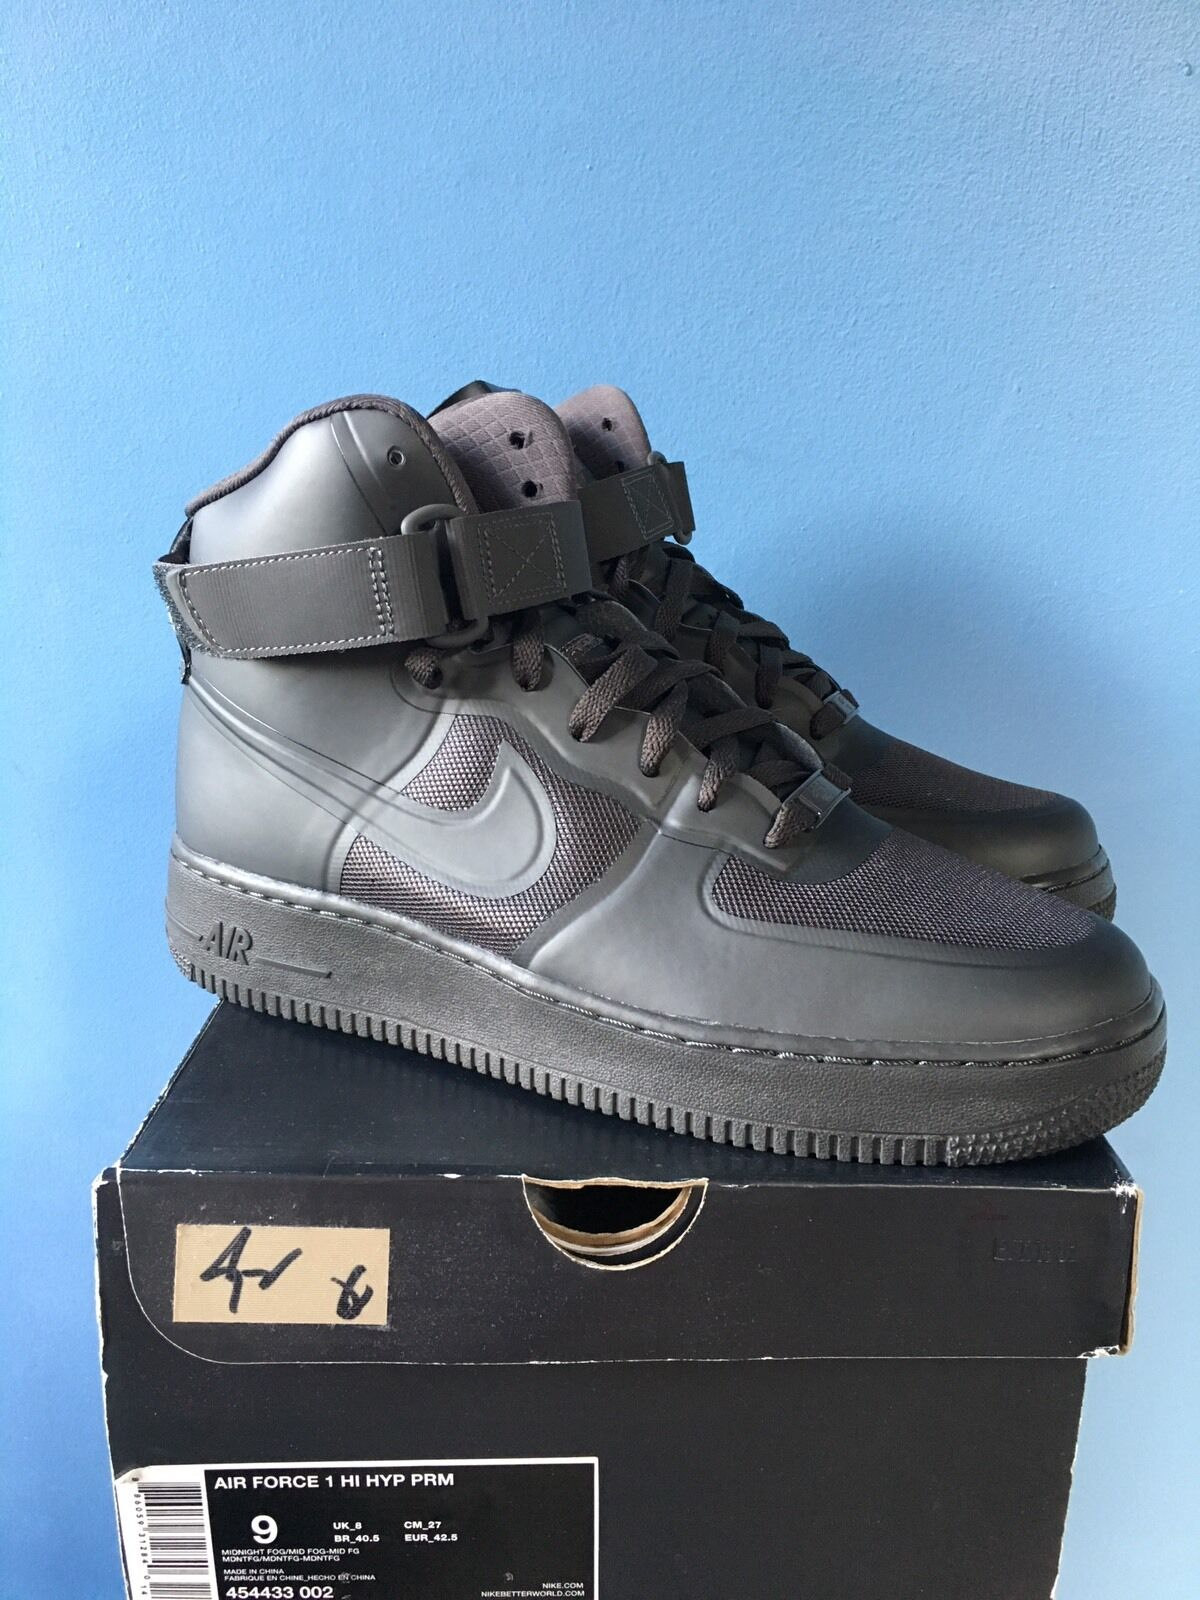 Nike Air Force 1 One High Hyperfuse All Black 3M Comfortable Brand discount